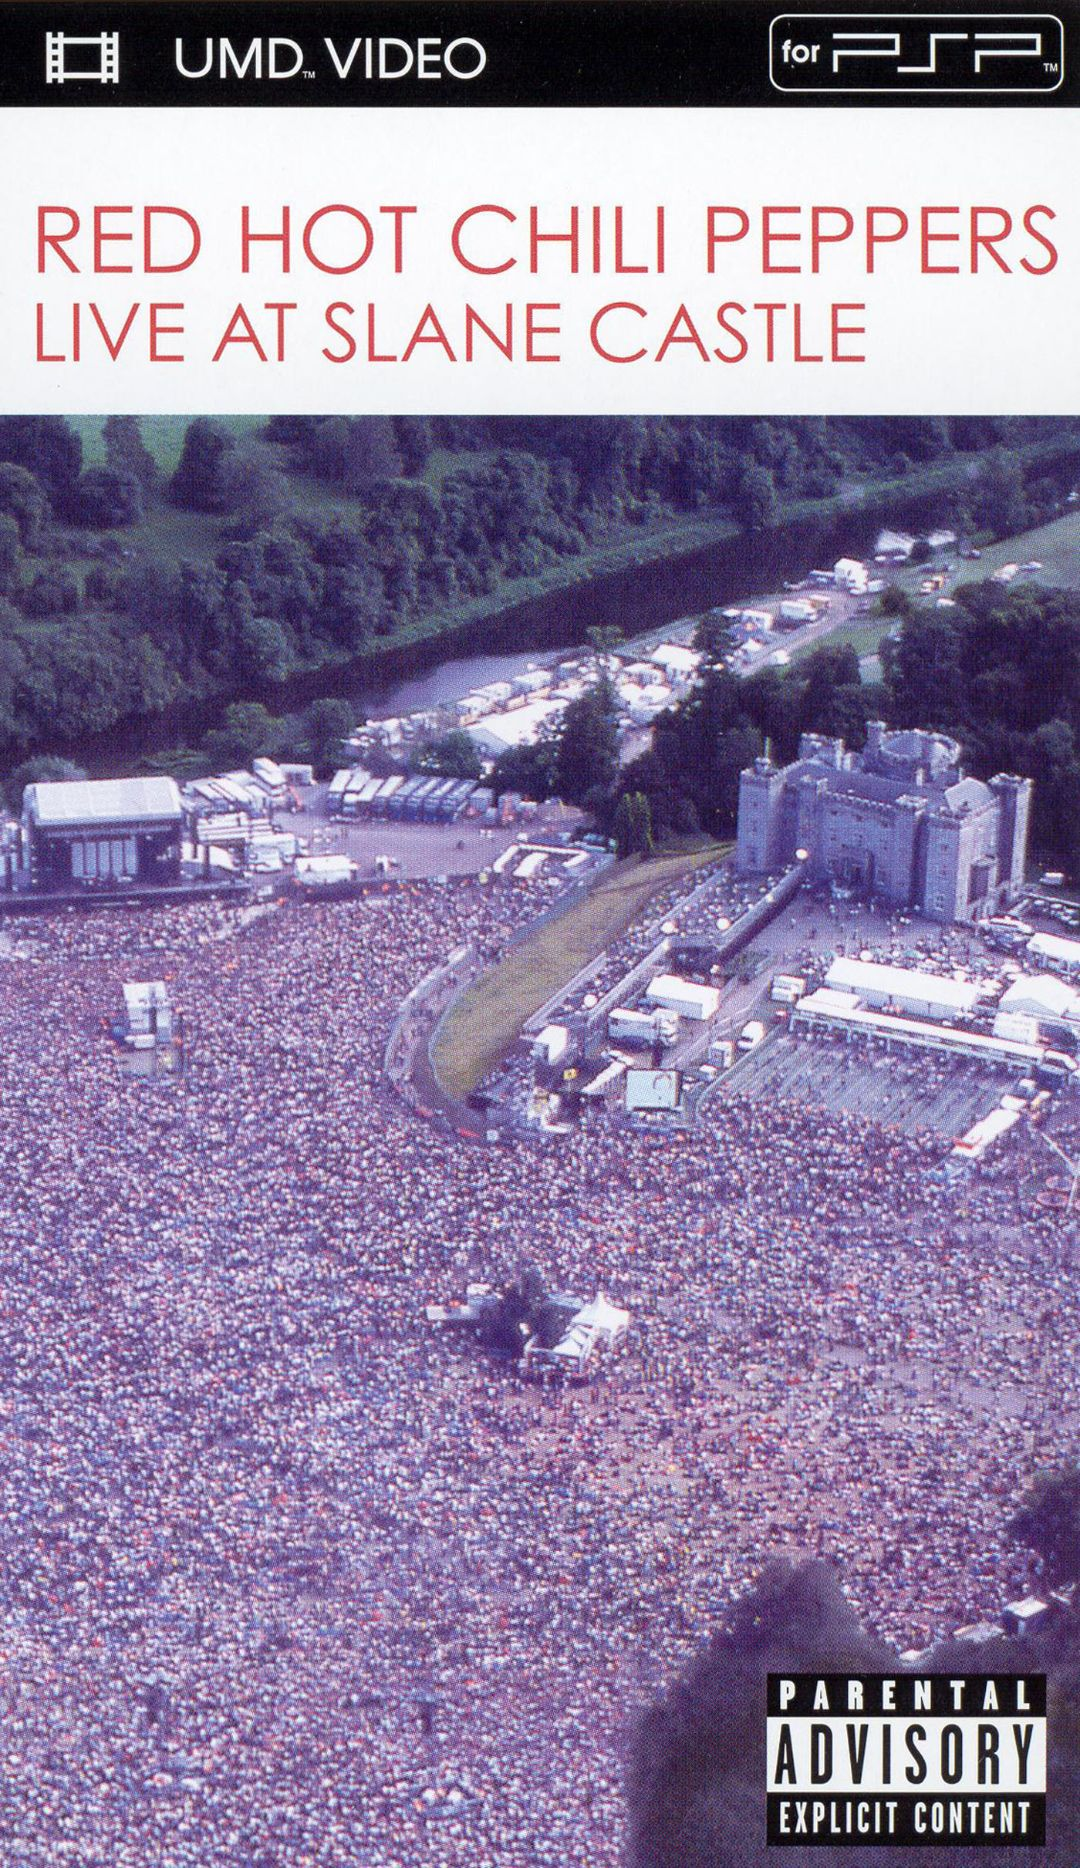 Live at Slane Castle [Video]